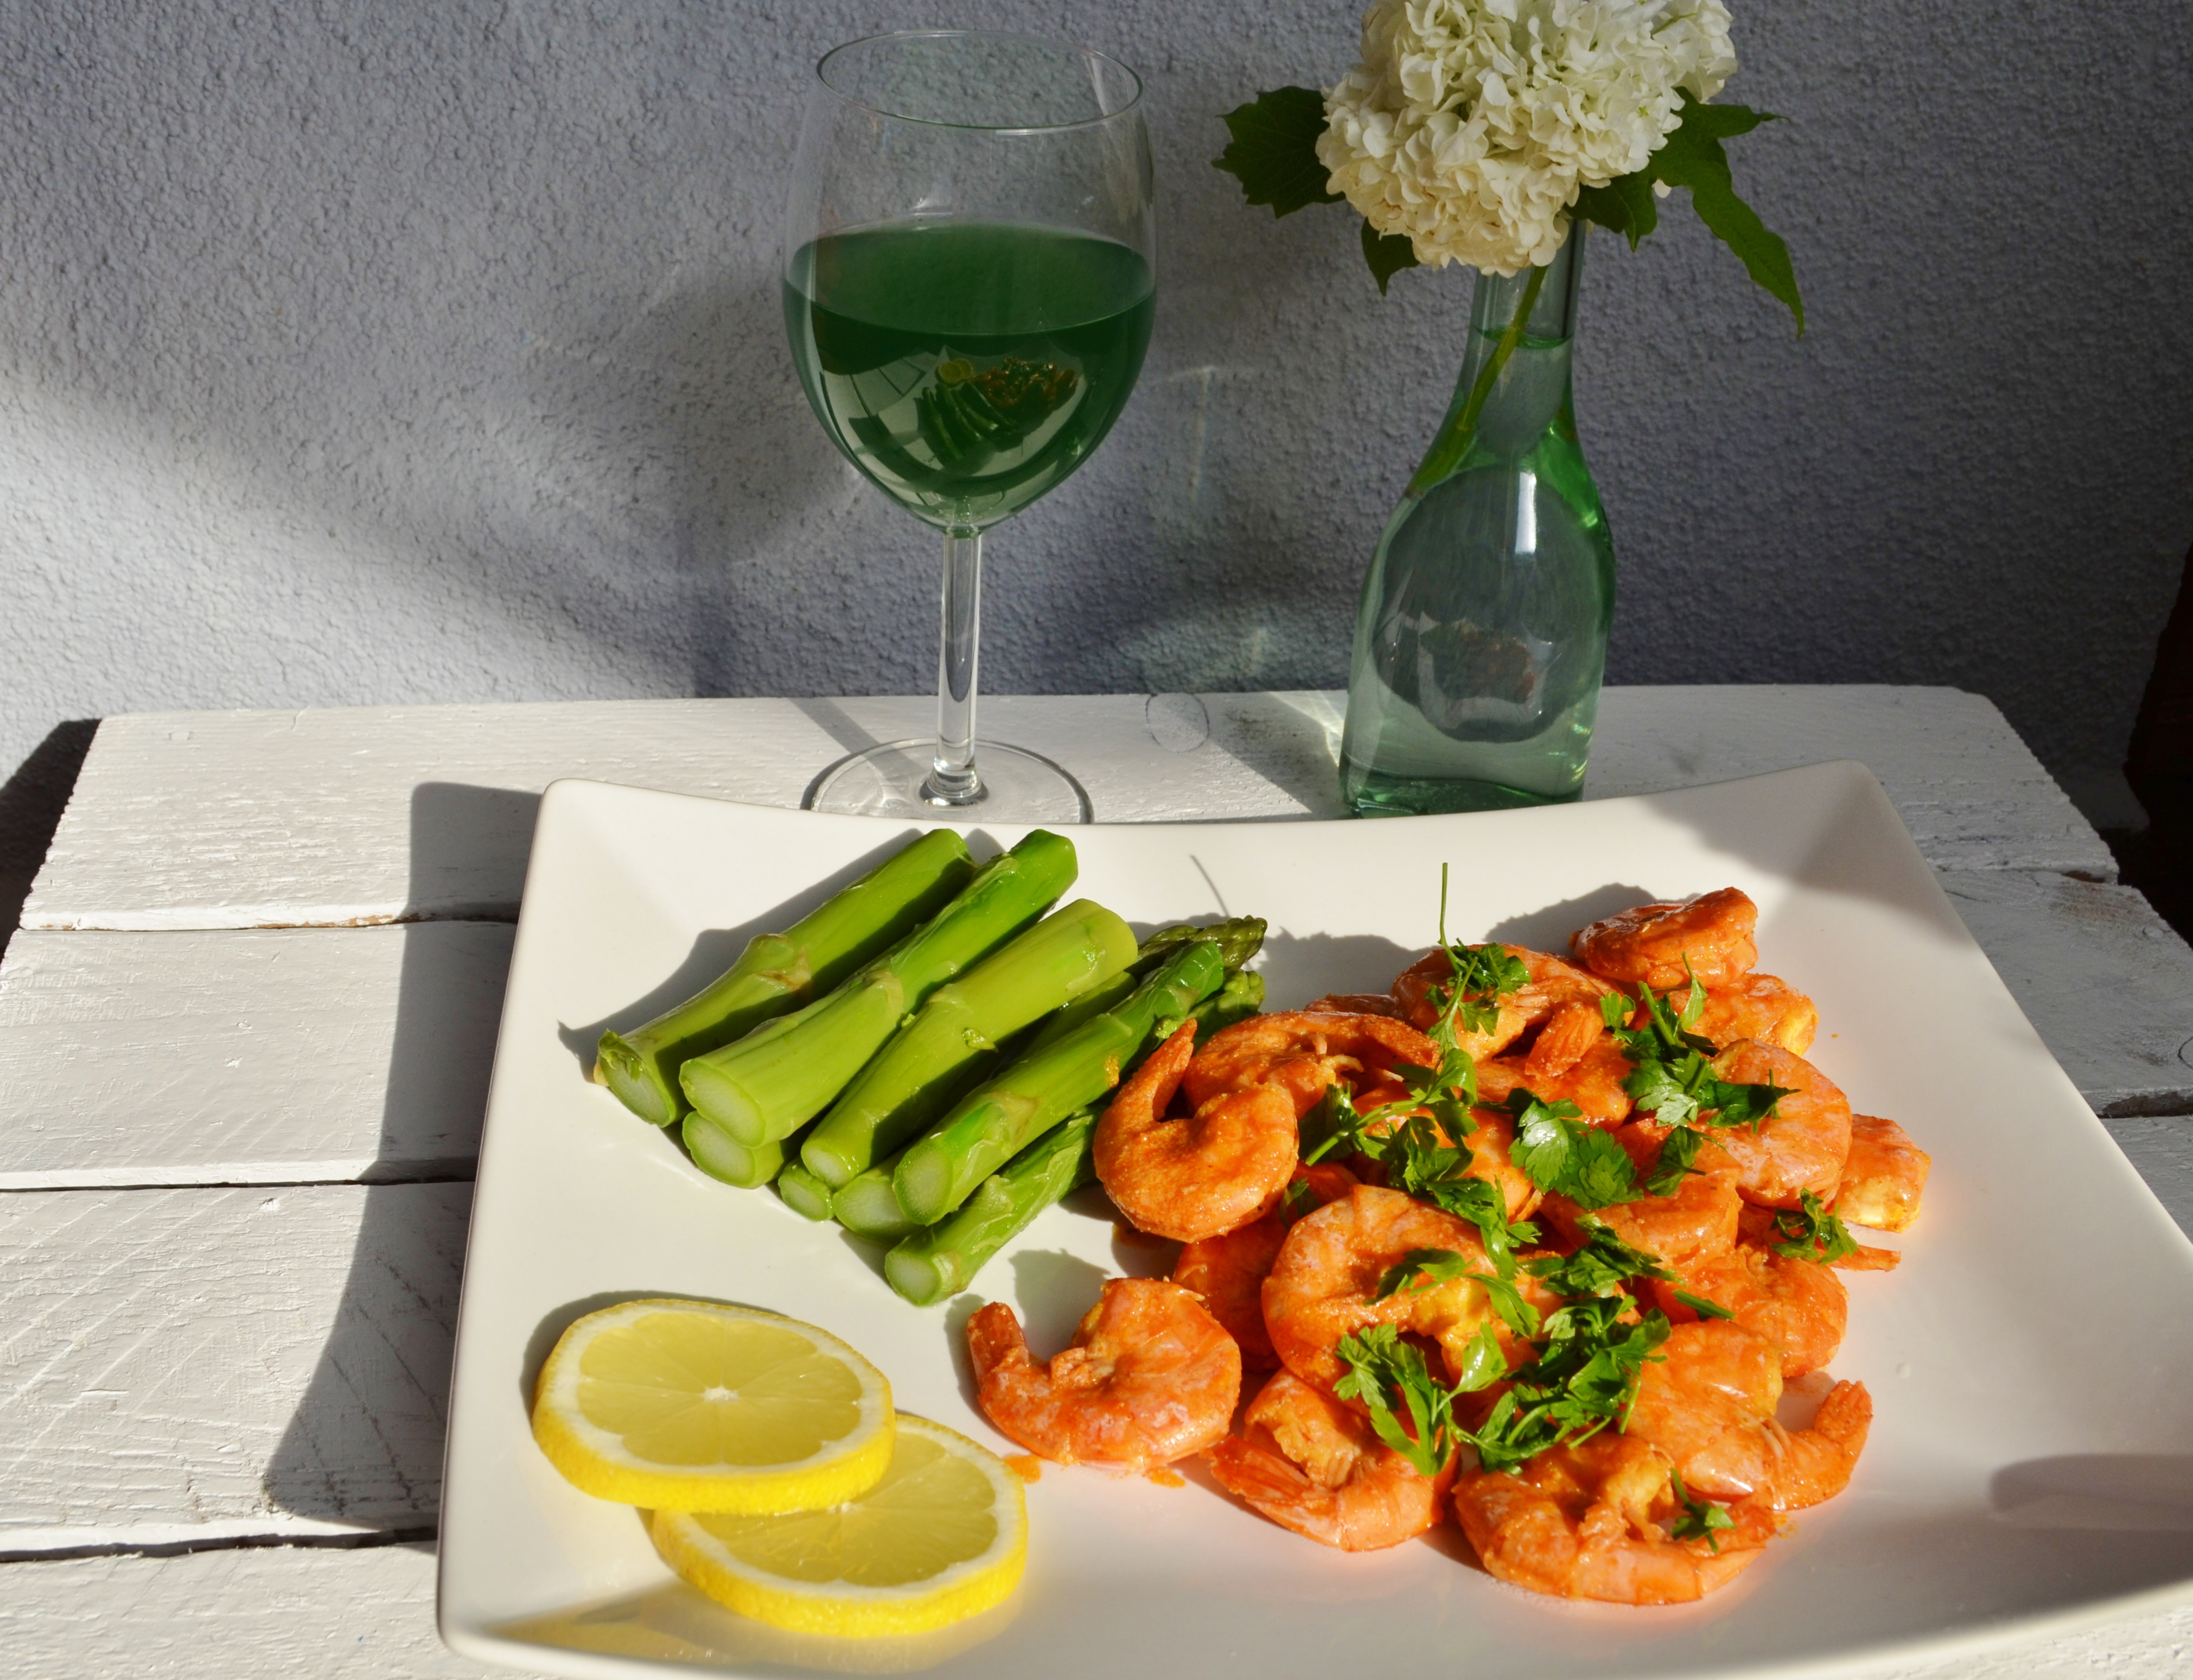 King prawns and green asparagus!